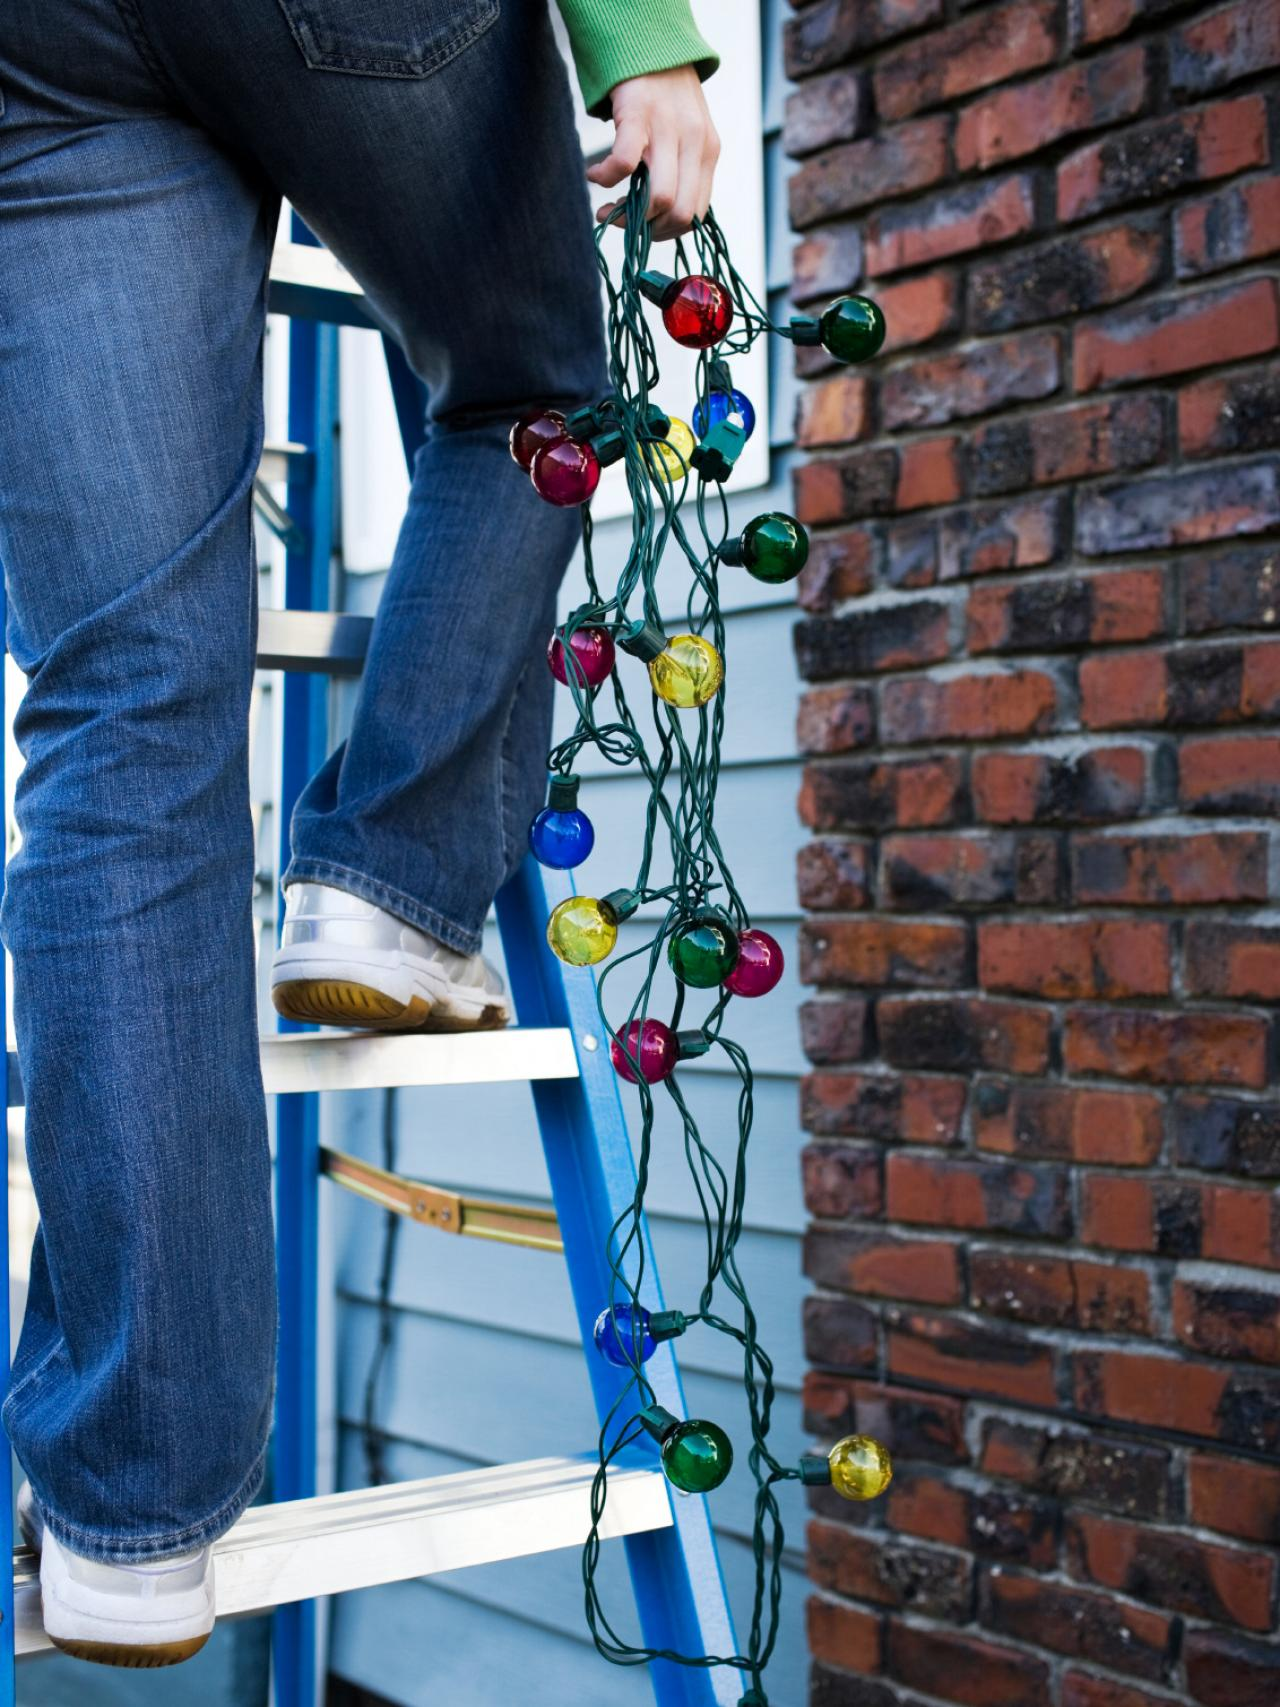 How to hang christmas lights diy be cautious when installing exterior lighting aloadofball